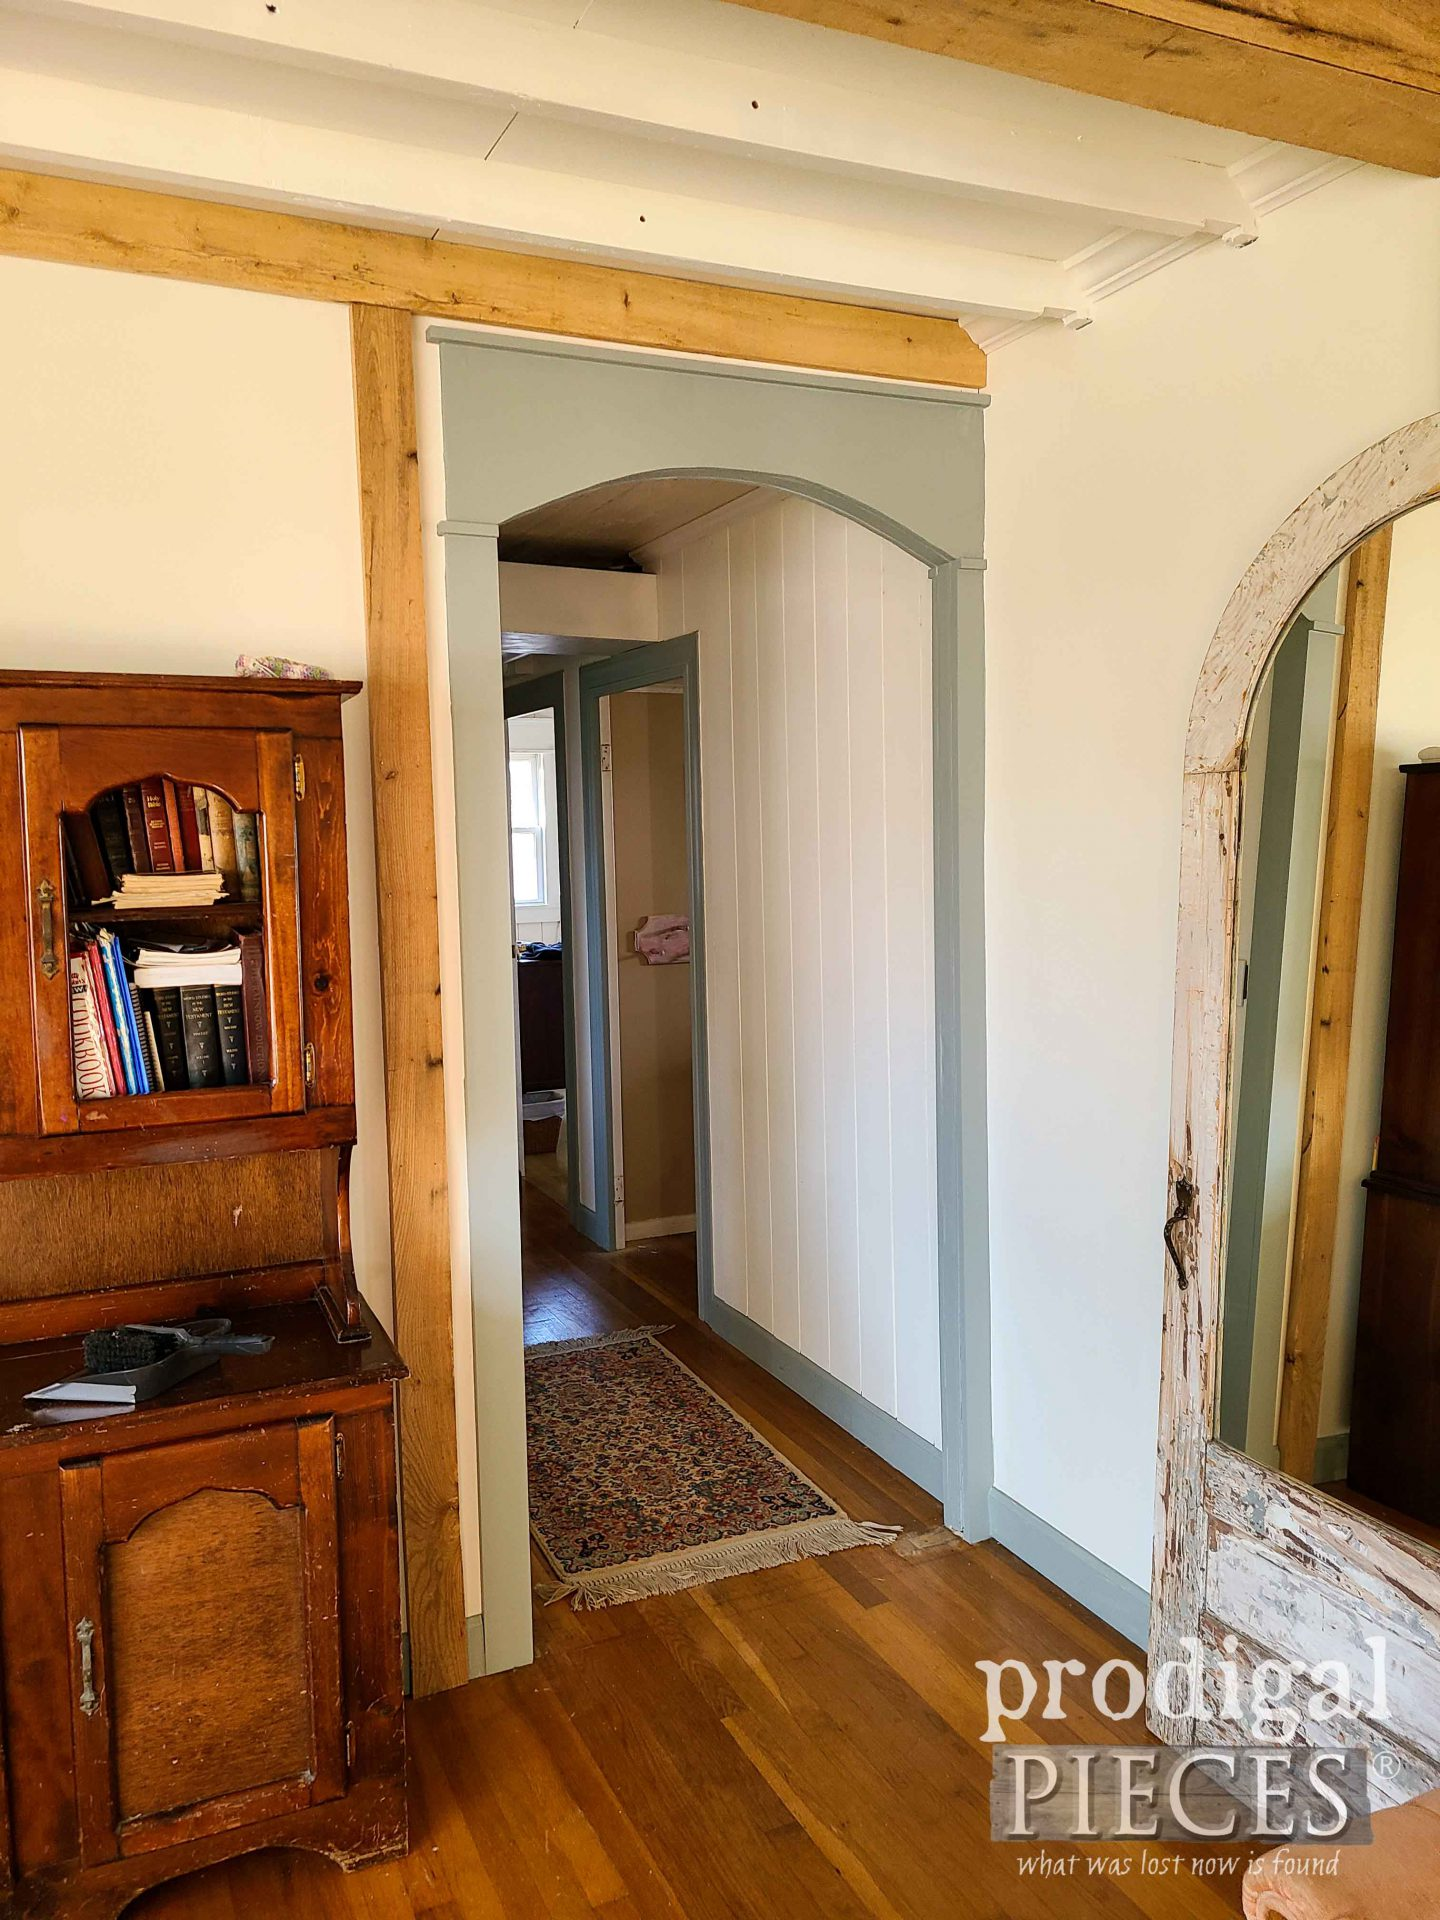 DIY Arched Living Room Doorway by Larissa of Prodigal Pieces | prodigalpieces.com #prodigalpieces #farmhouse #home #diy